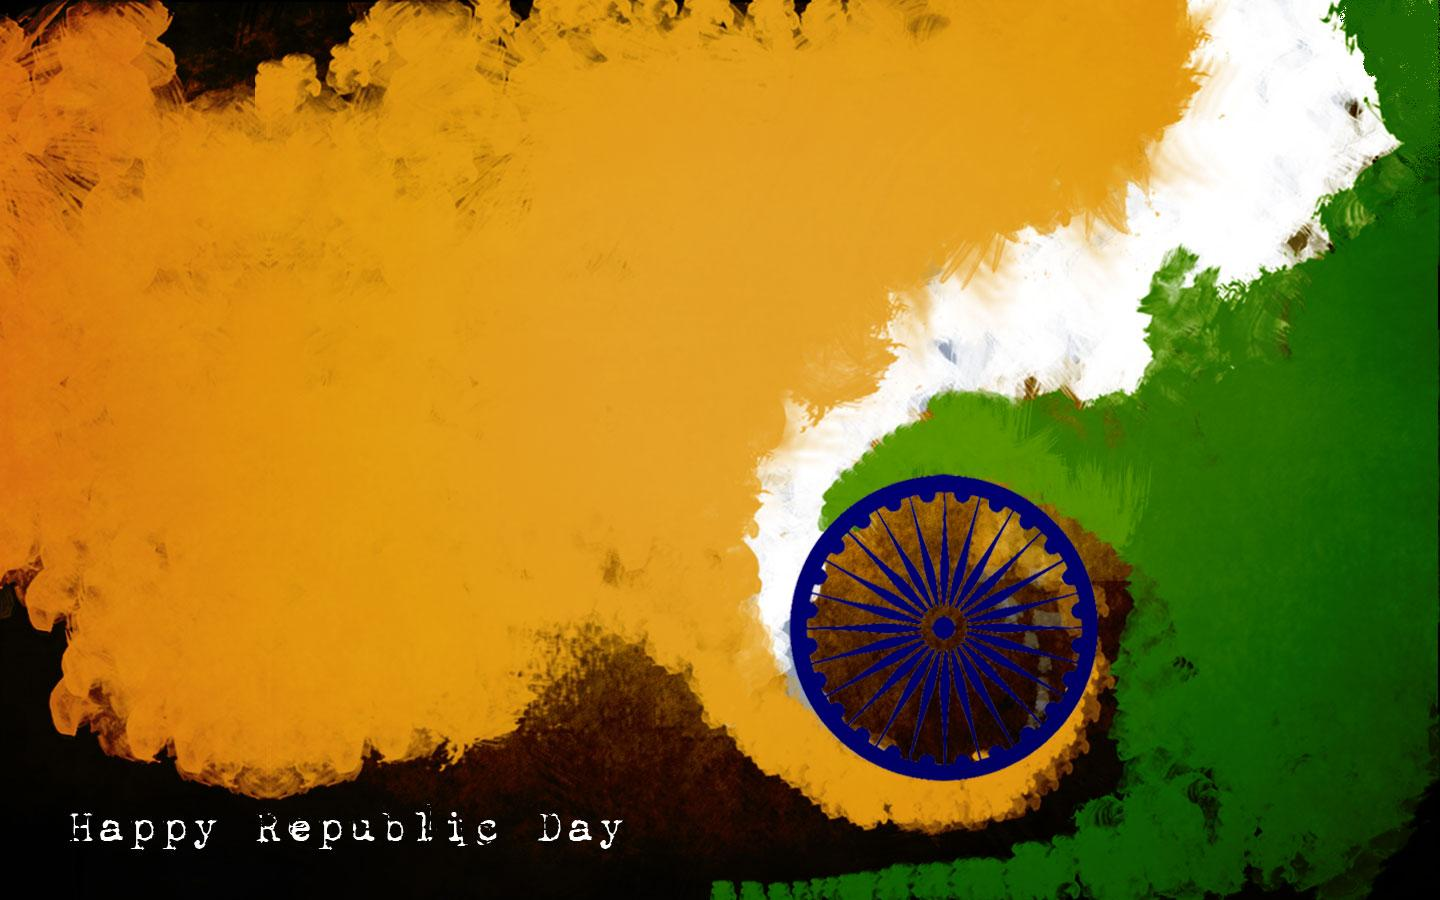 http://3.bp.blogspot.com/-6H37MhjOvEg/TxcAB9RrlJI/AAAAAAAALN8/ud7ohEhL9y0/s1600/republic-day-26th-january-sms.jpg